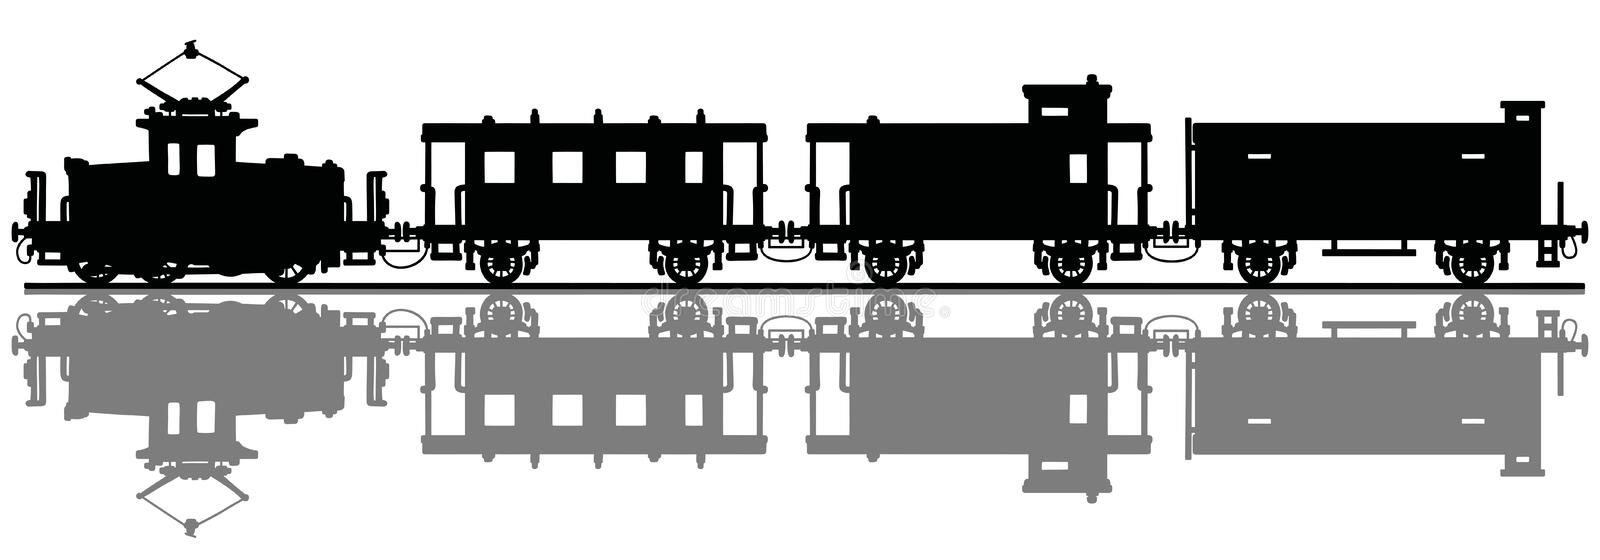 Vintage electric train royalty free illustration